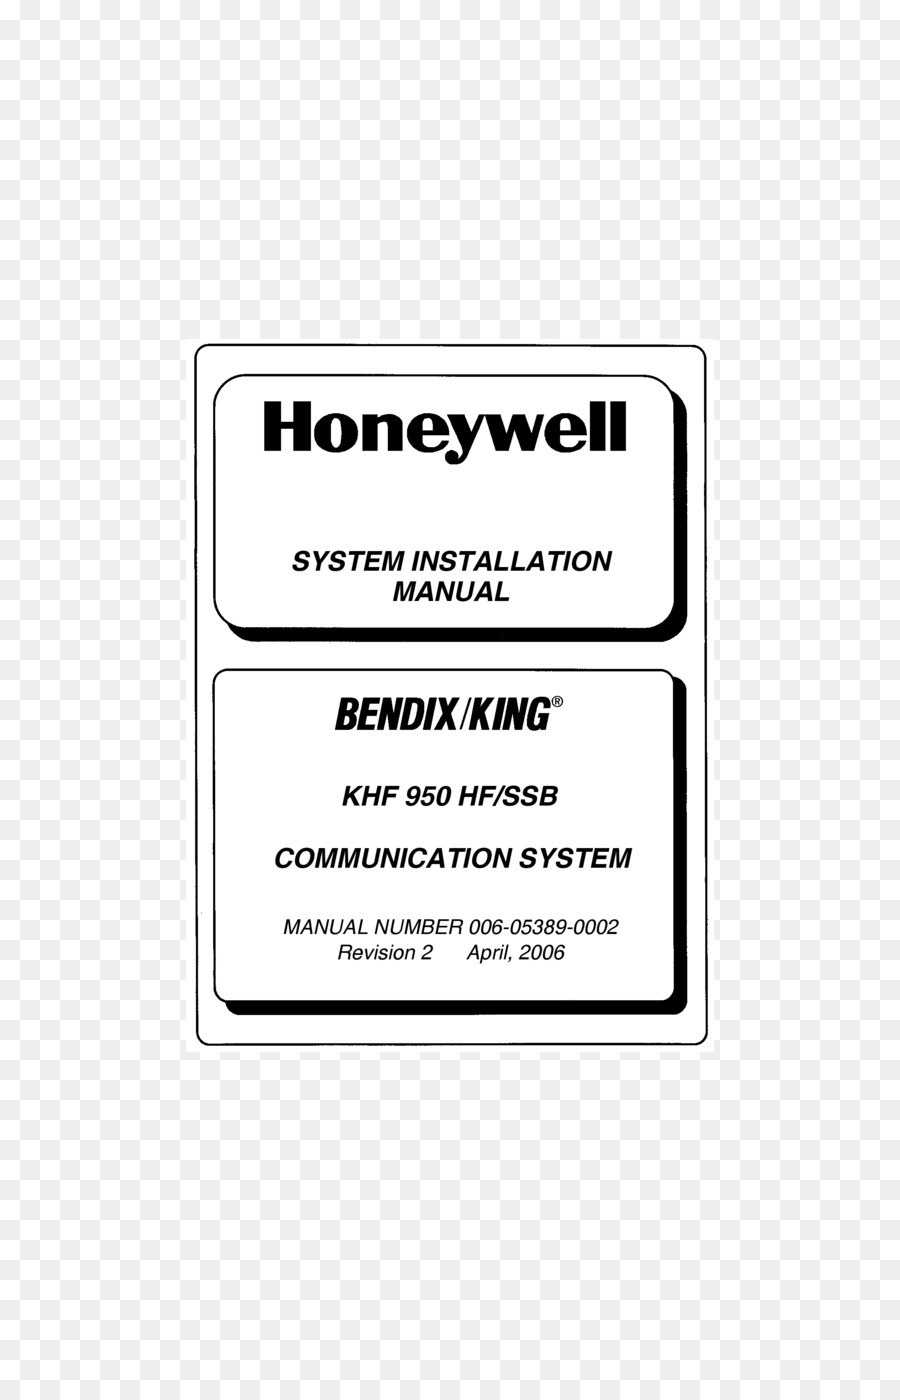 Wiring diagram Product Manuals Electrical Wires & Cable Schematic - Bendix  Aviation